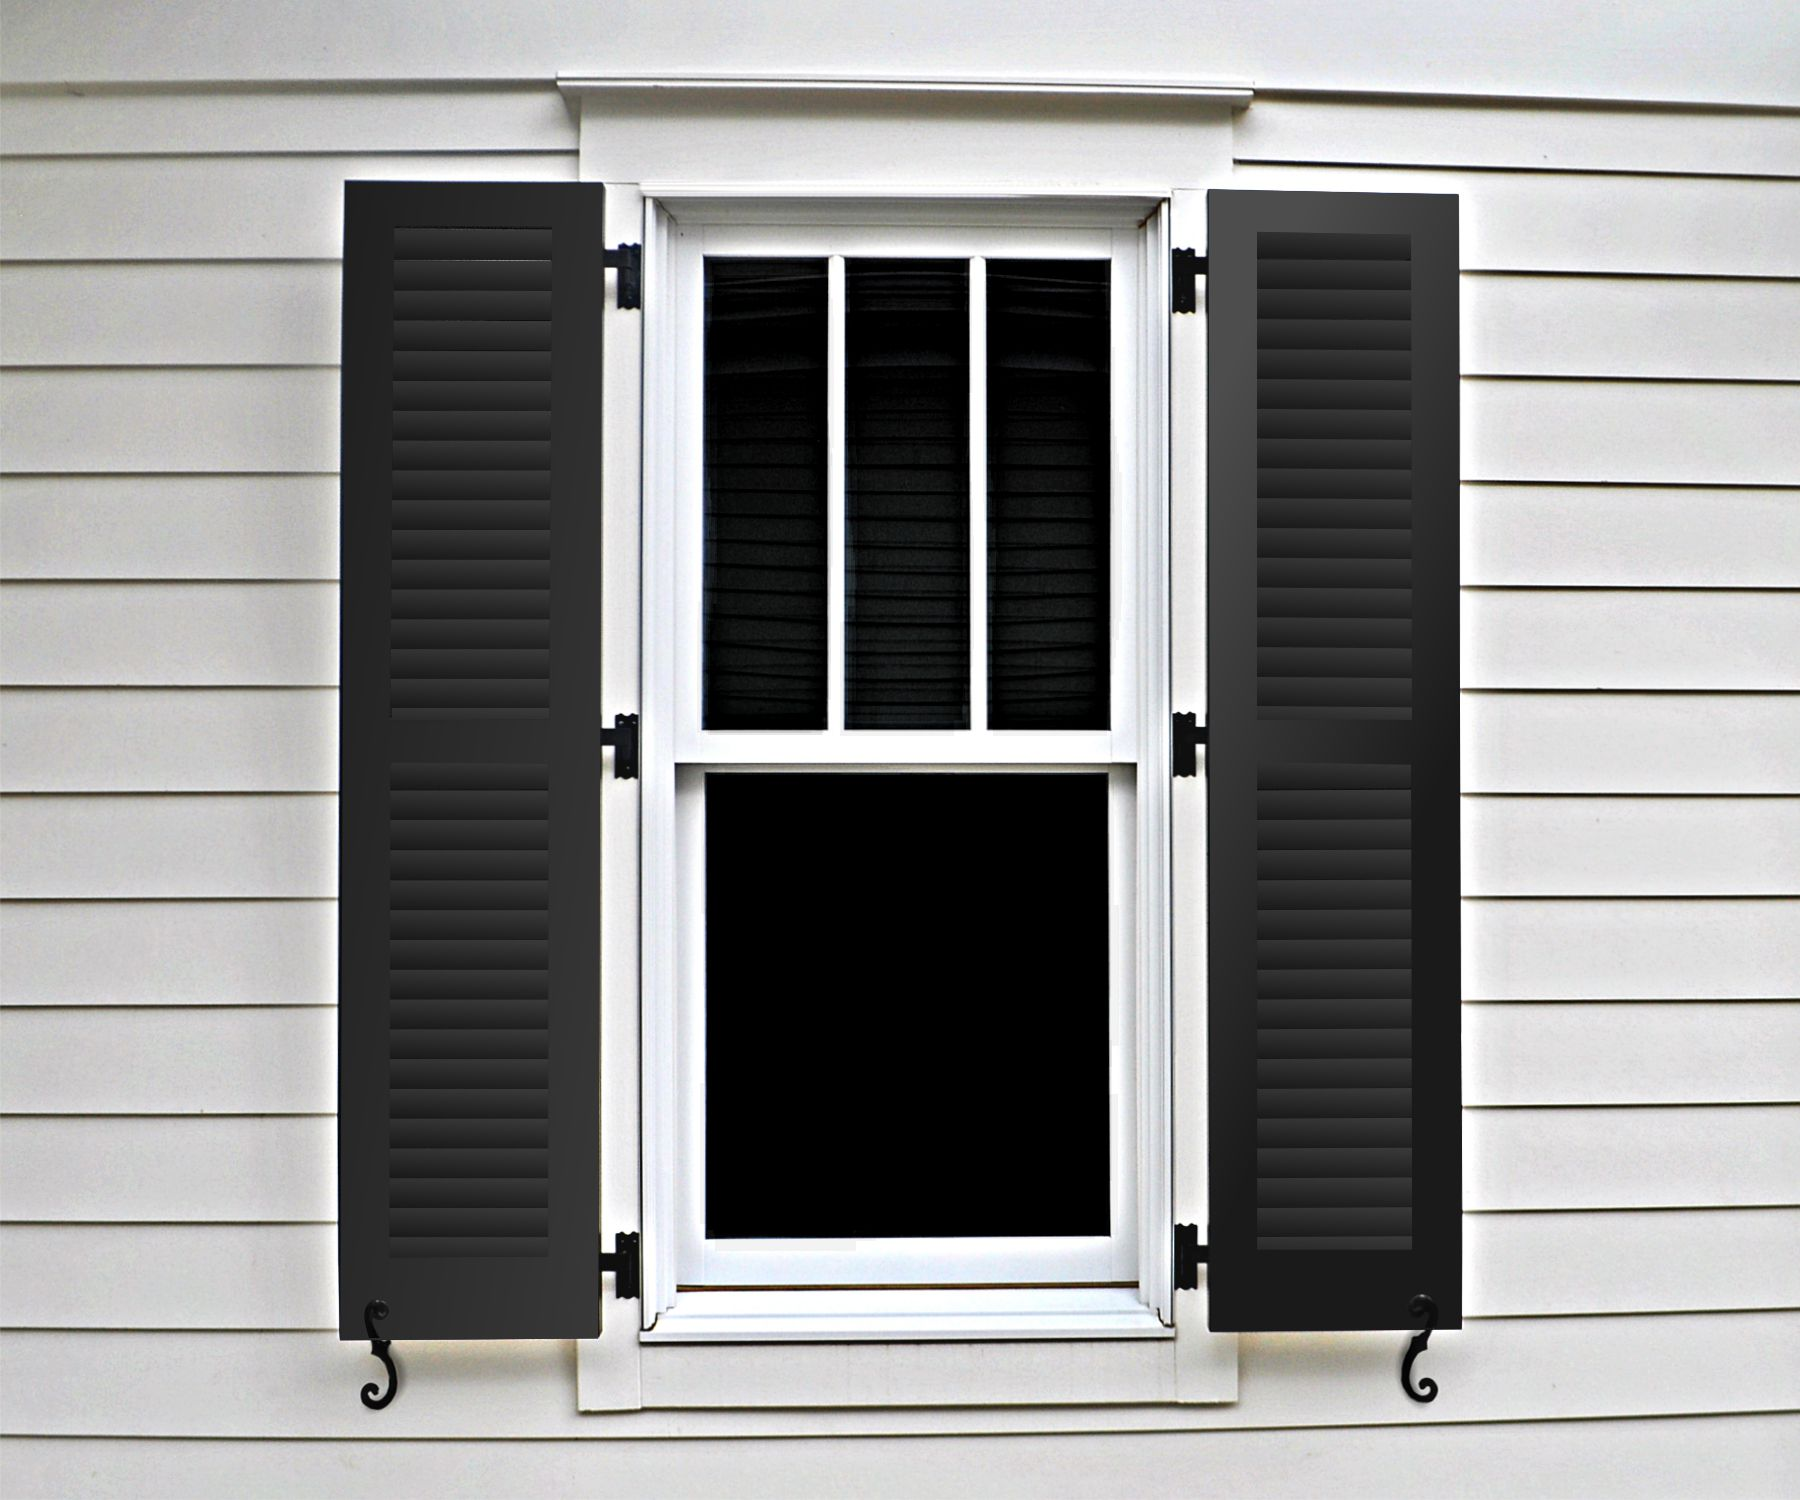 Weather Bull Shutters are affordable shutters made of metal.